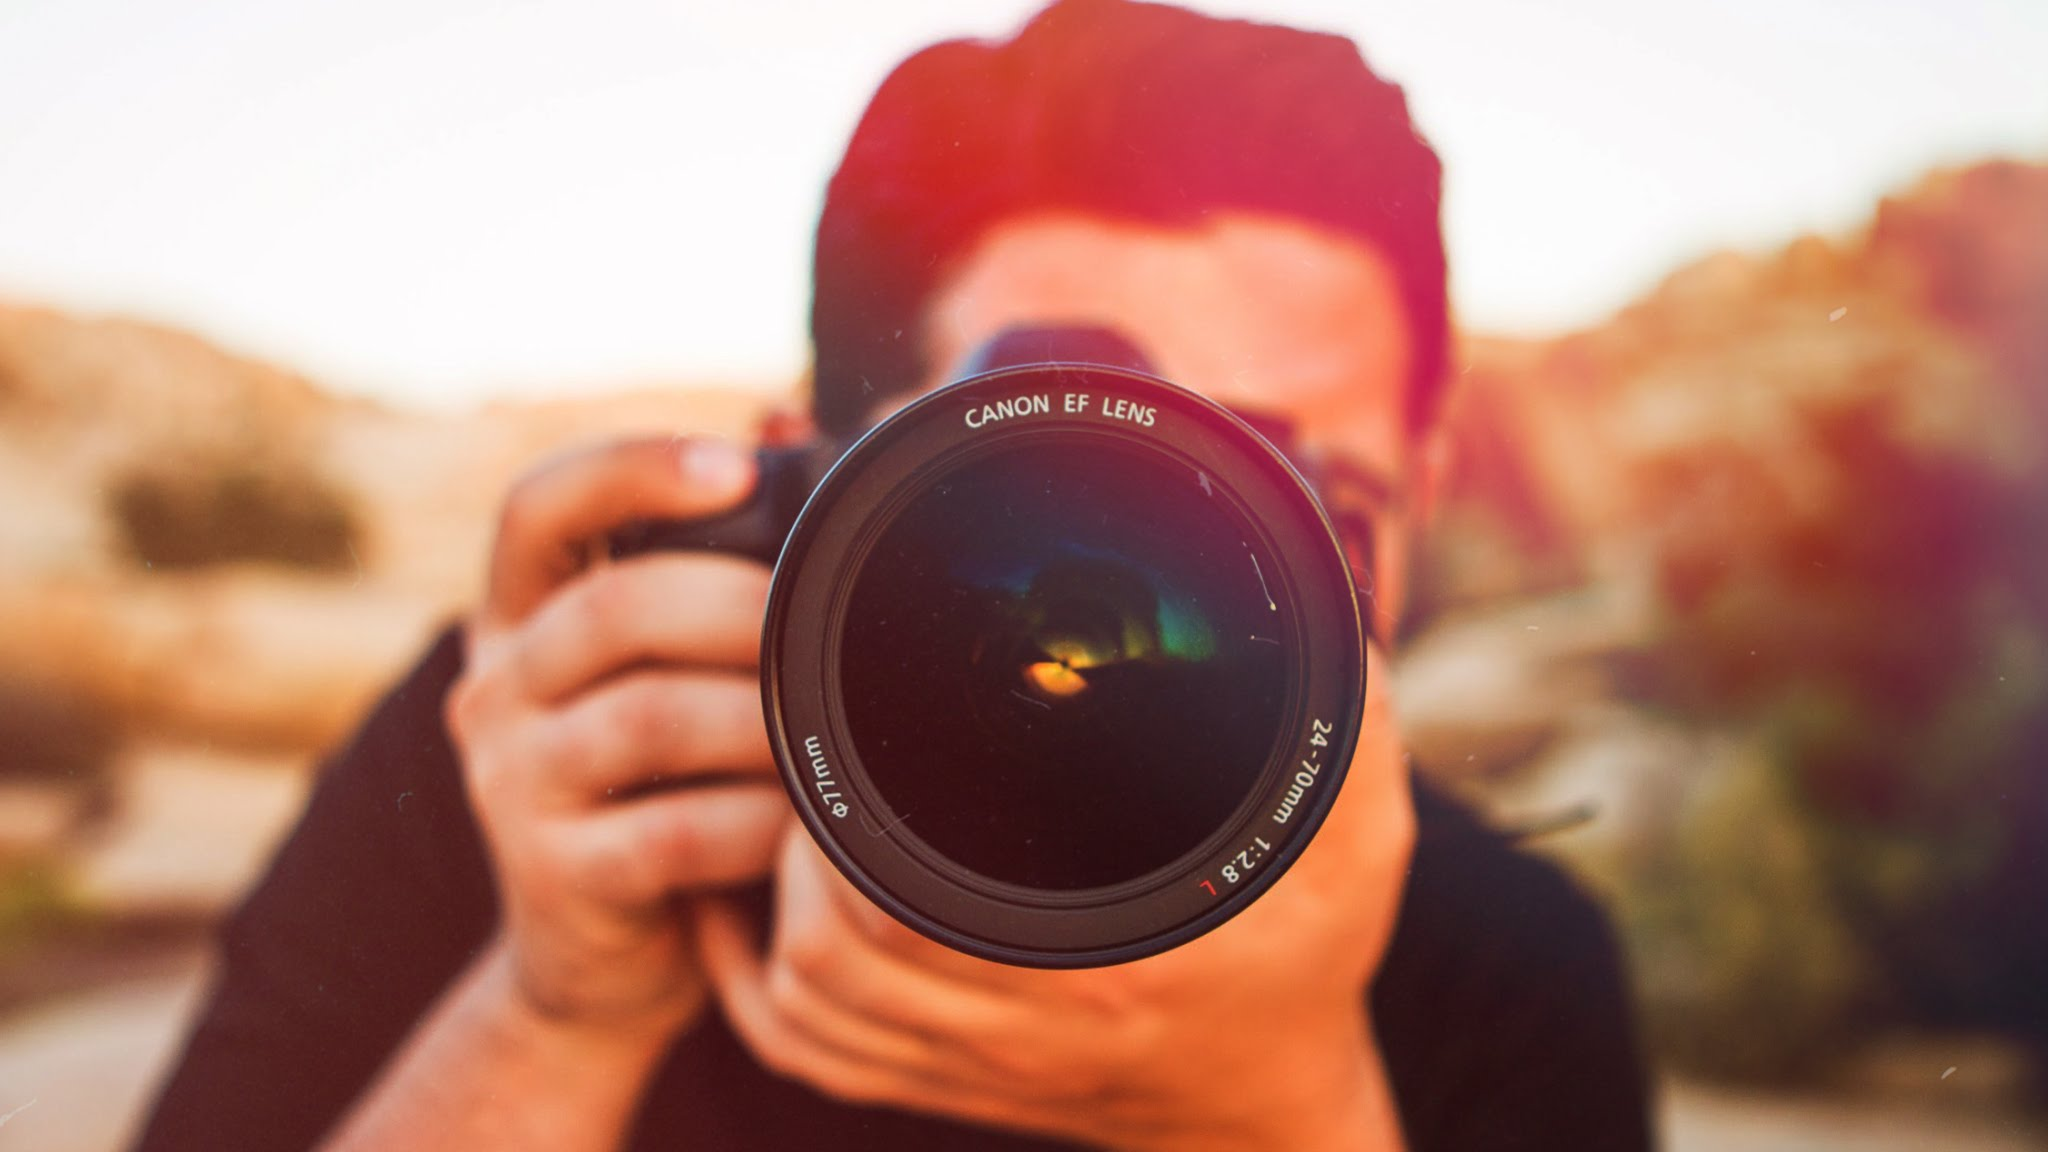 Using Services of a Professional Photographer